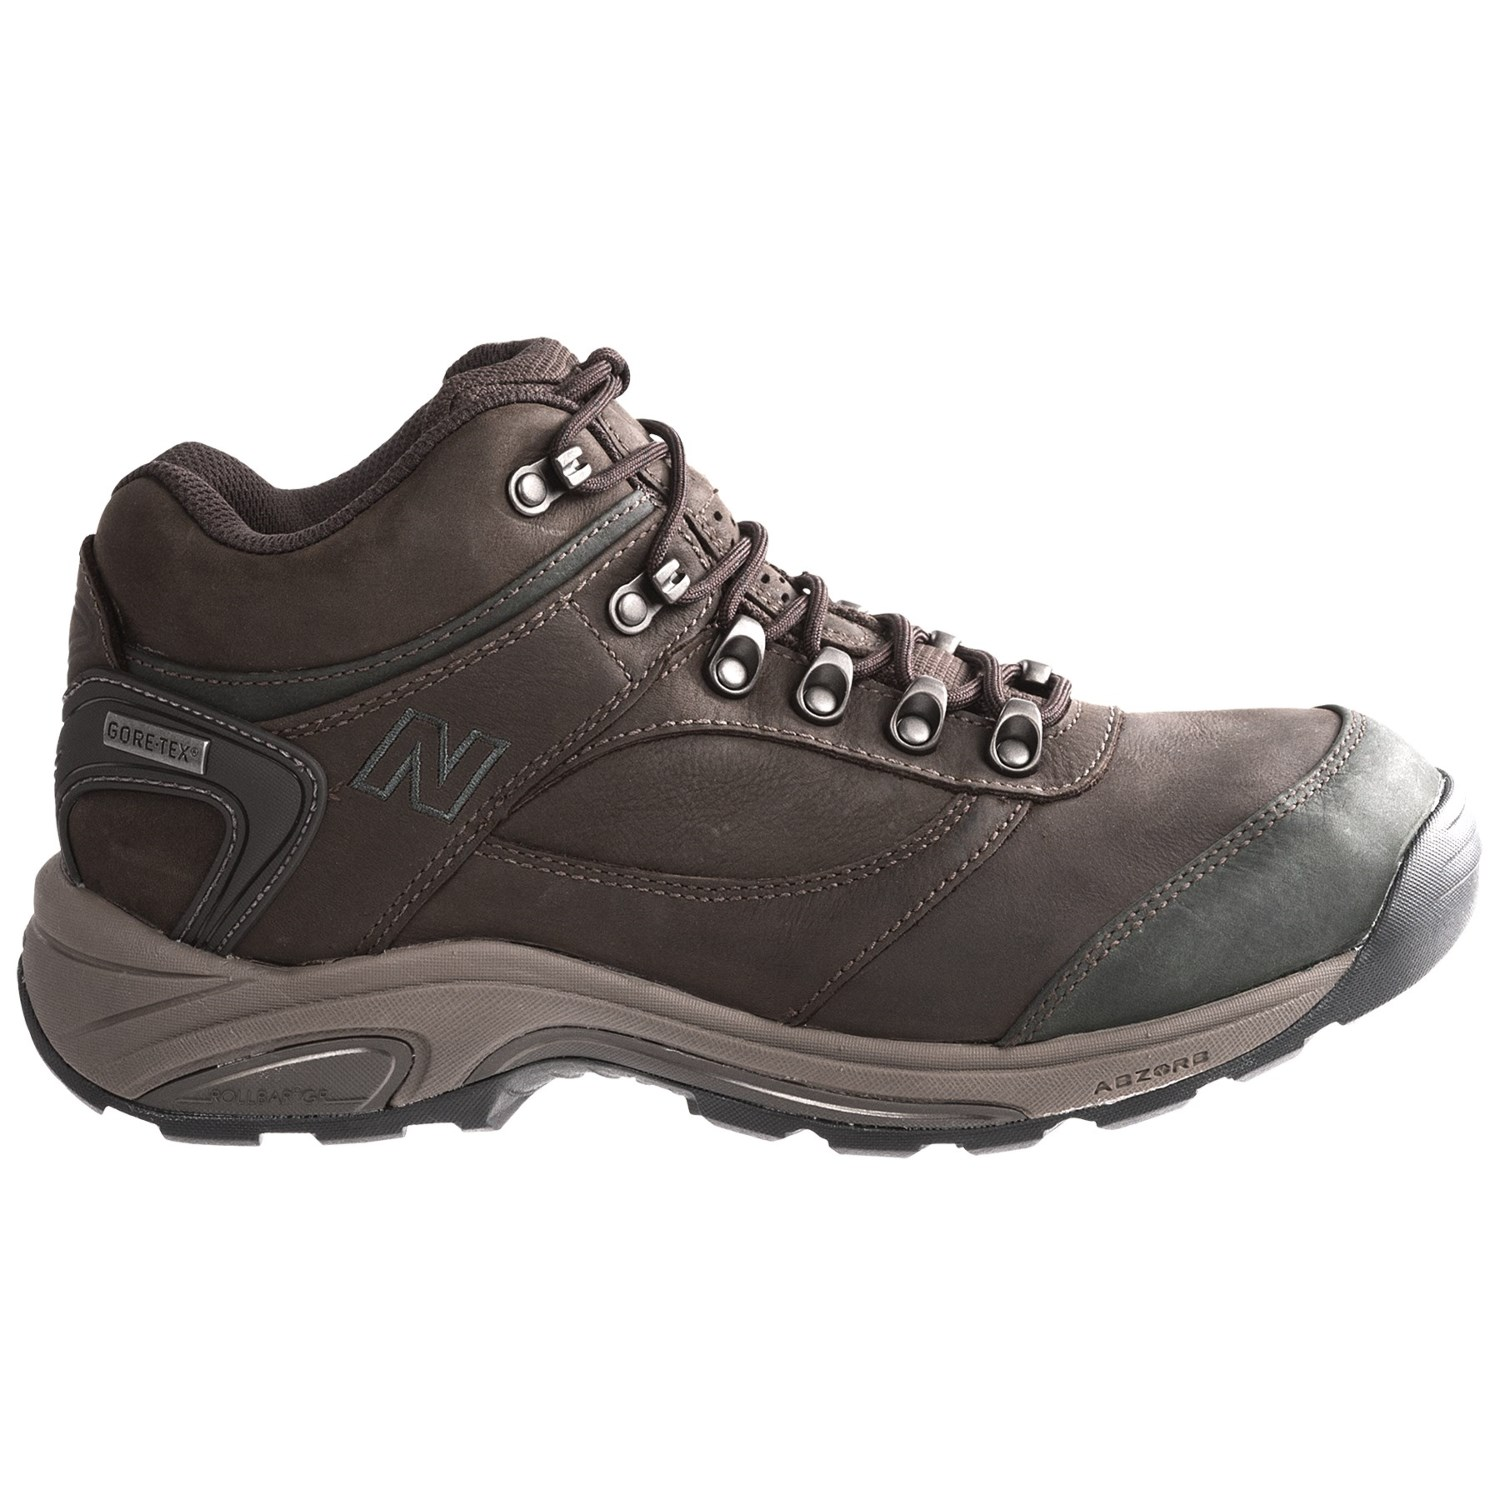 Balance MW978 Gore Tex Hiking Boots Waterproof Nubuck For Men